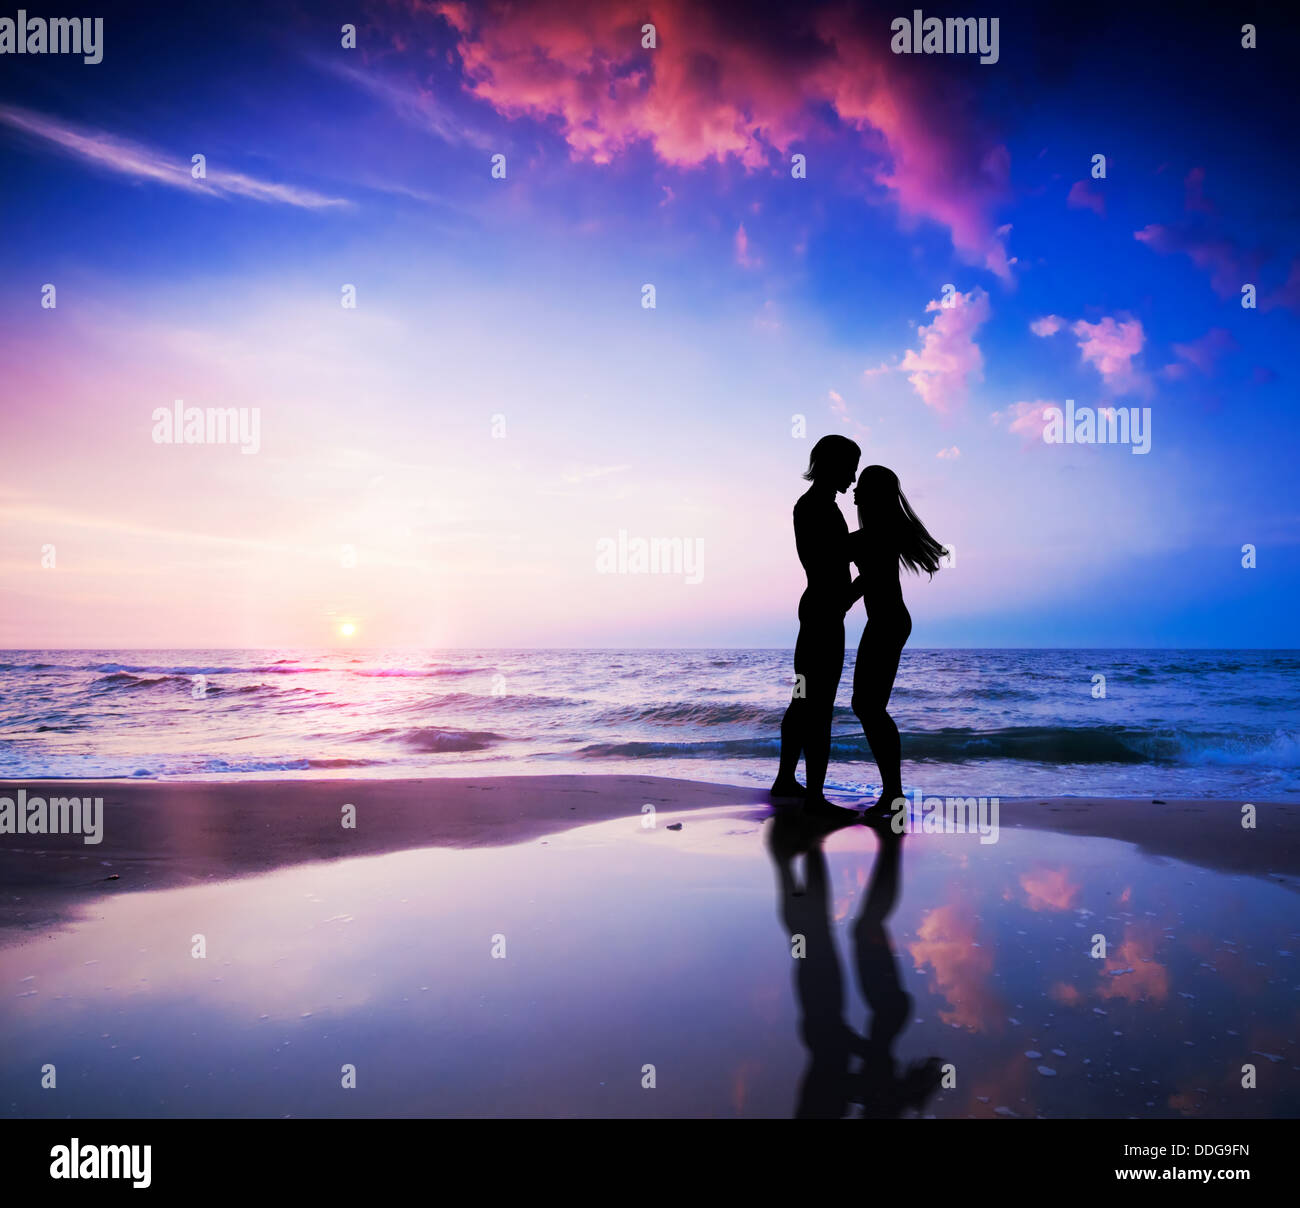 Romantic couple about to kiss on beach at sunset - Stock Image